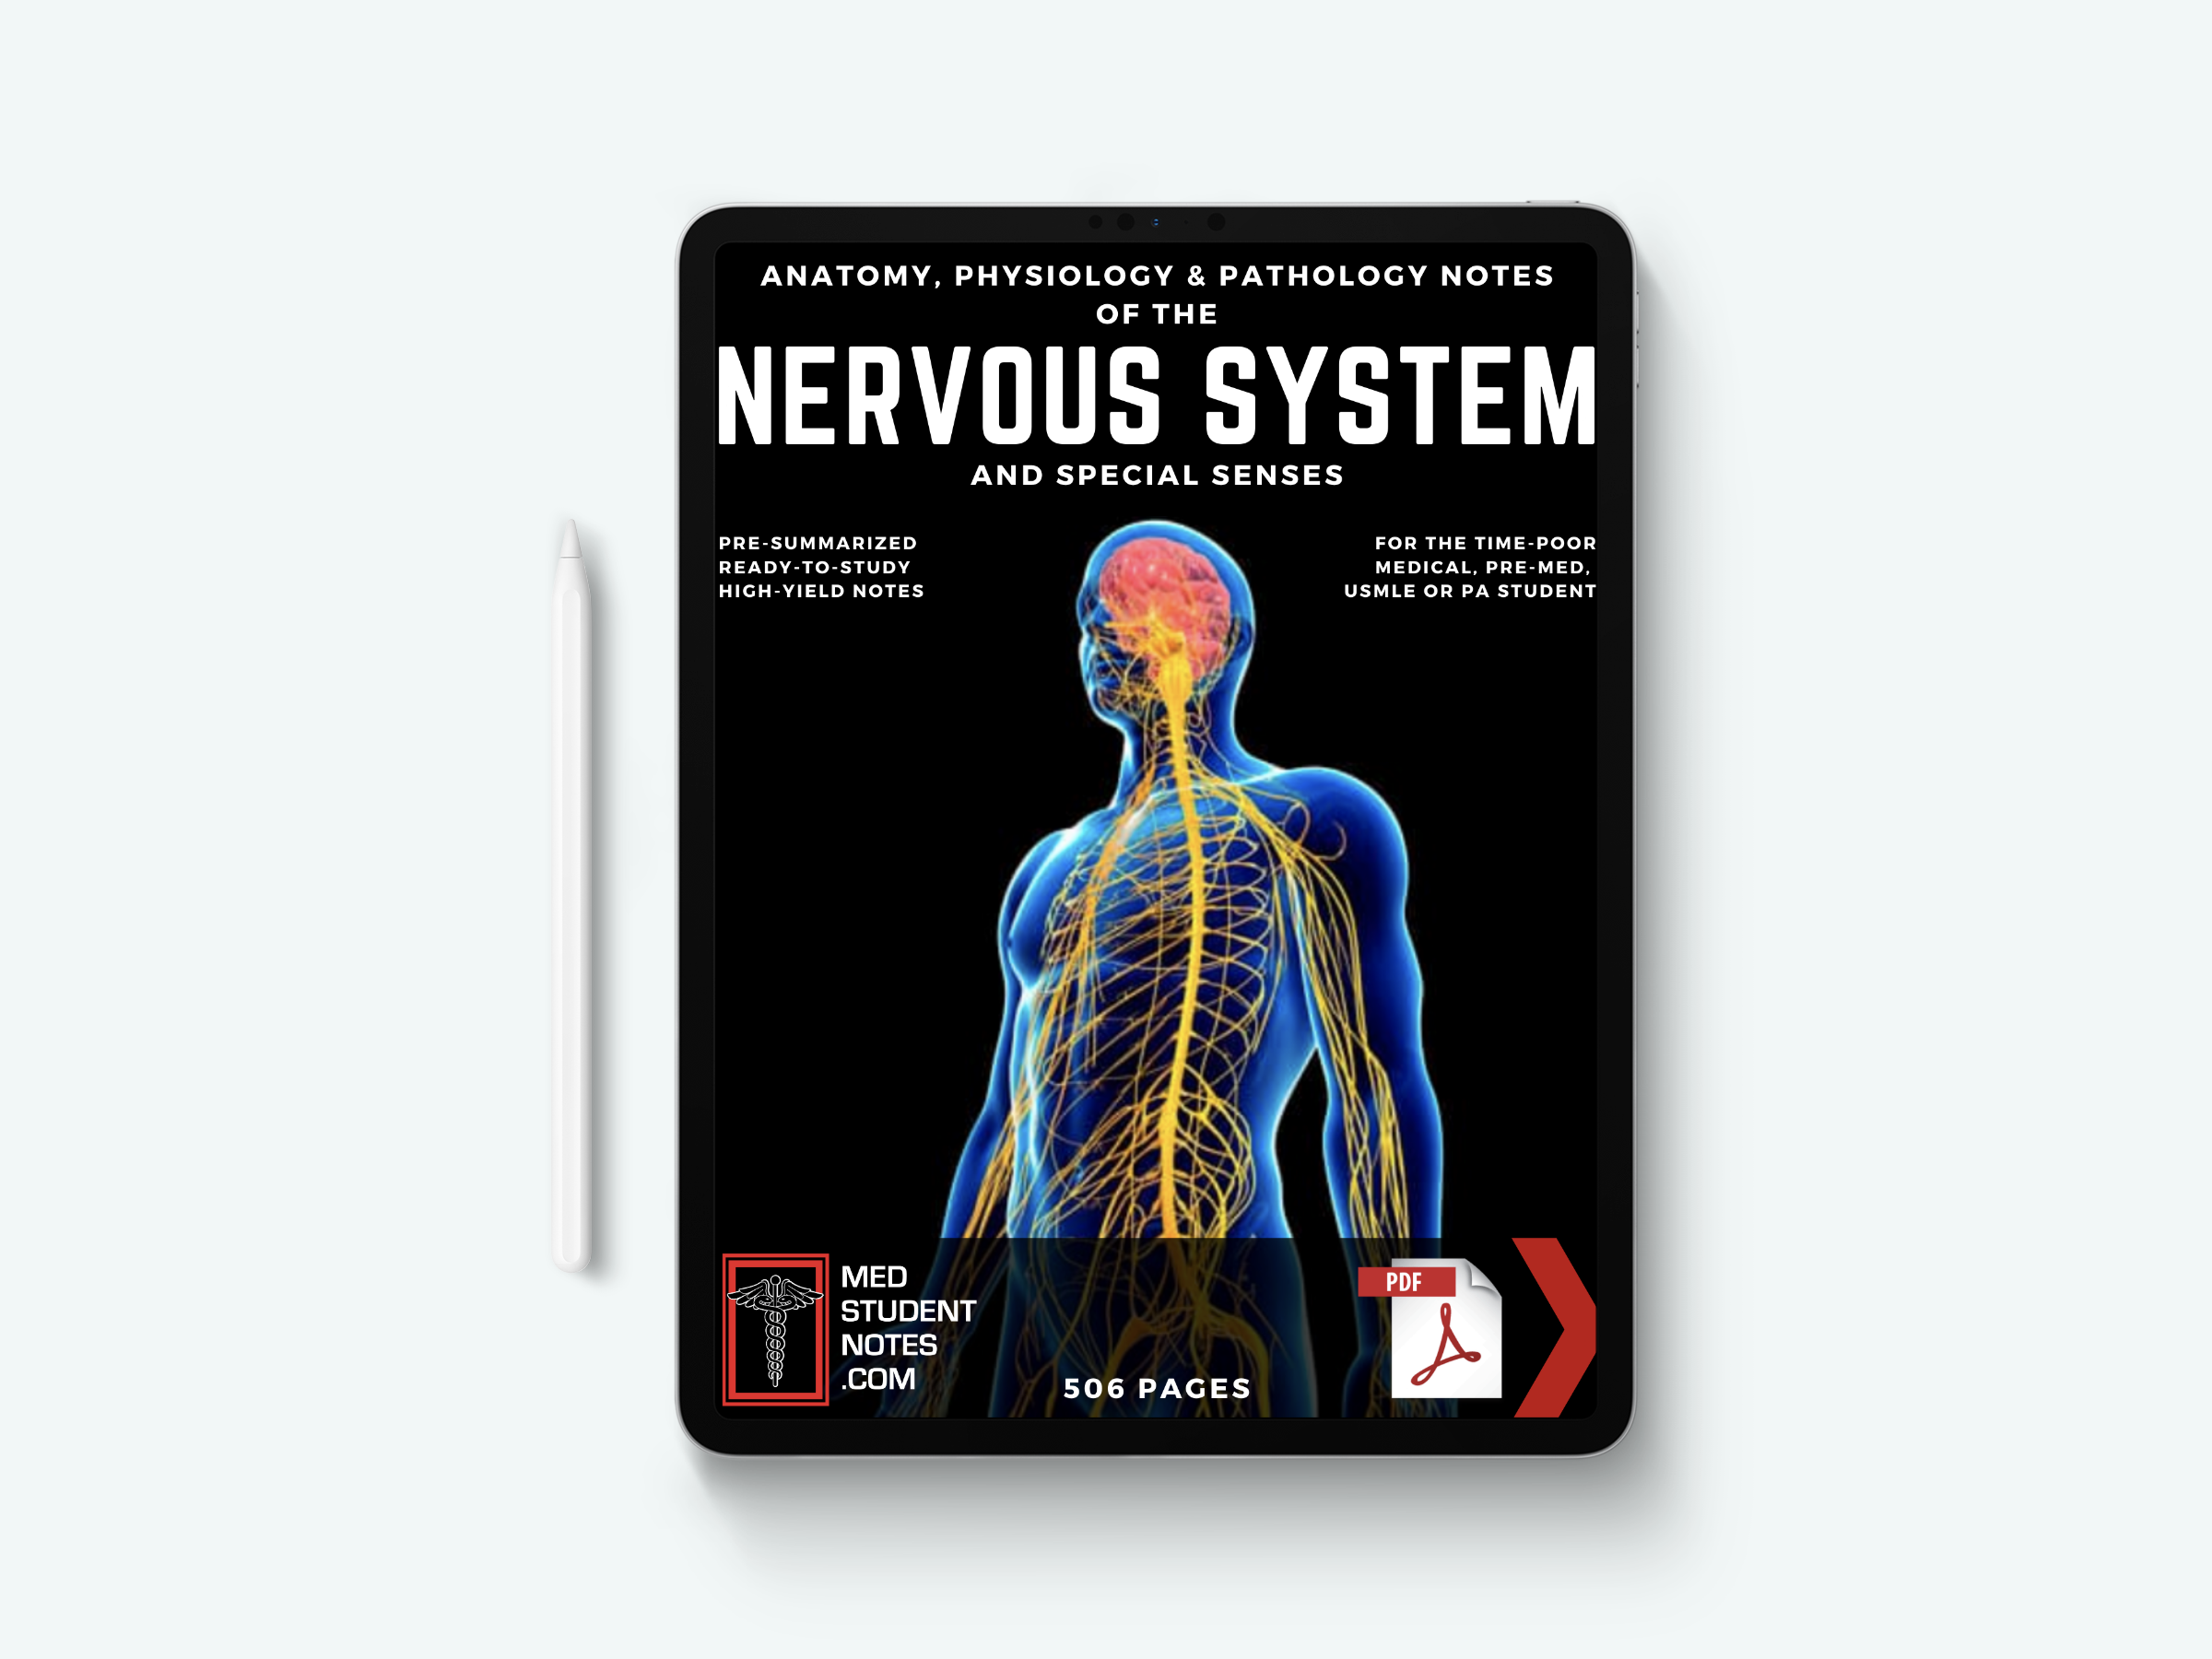 the nervous system special senses notes